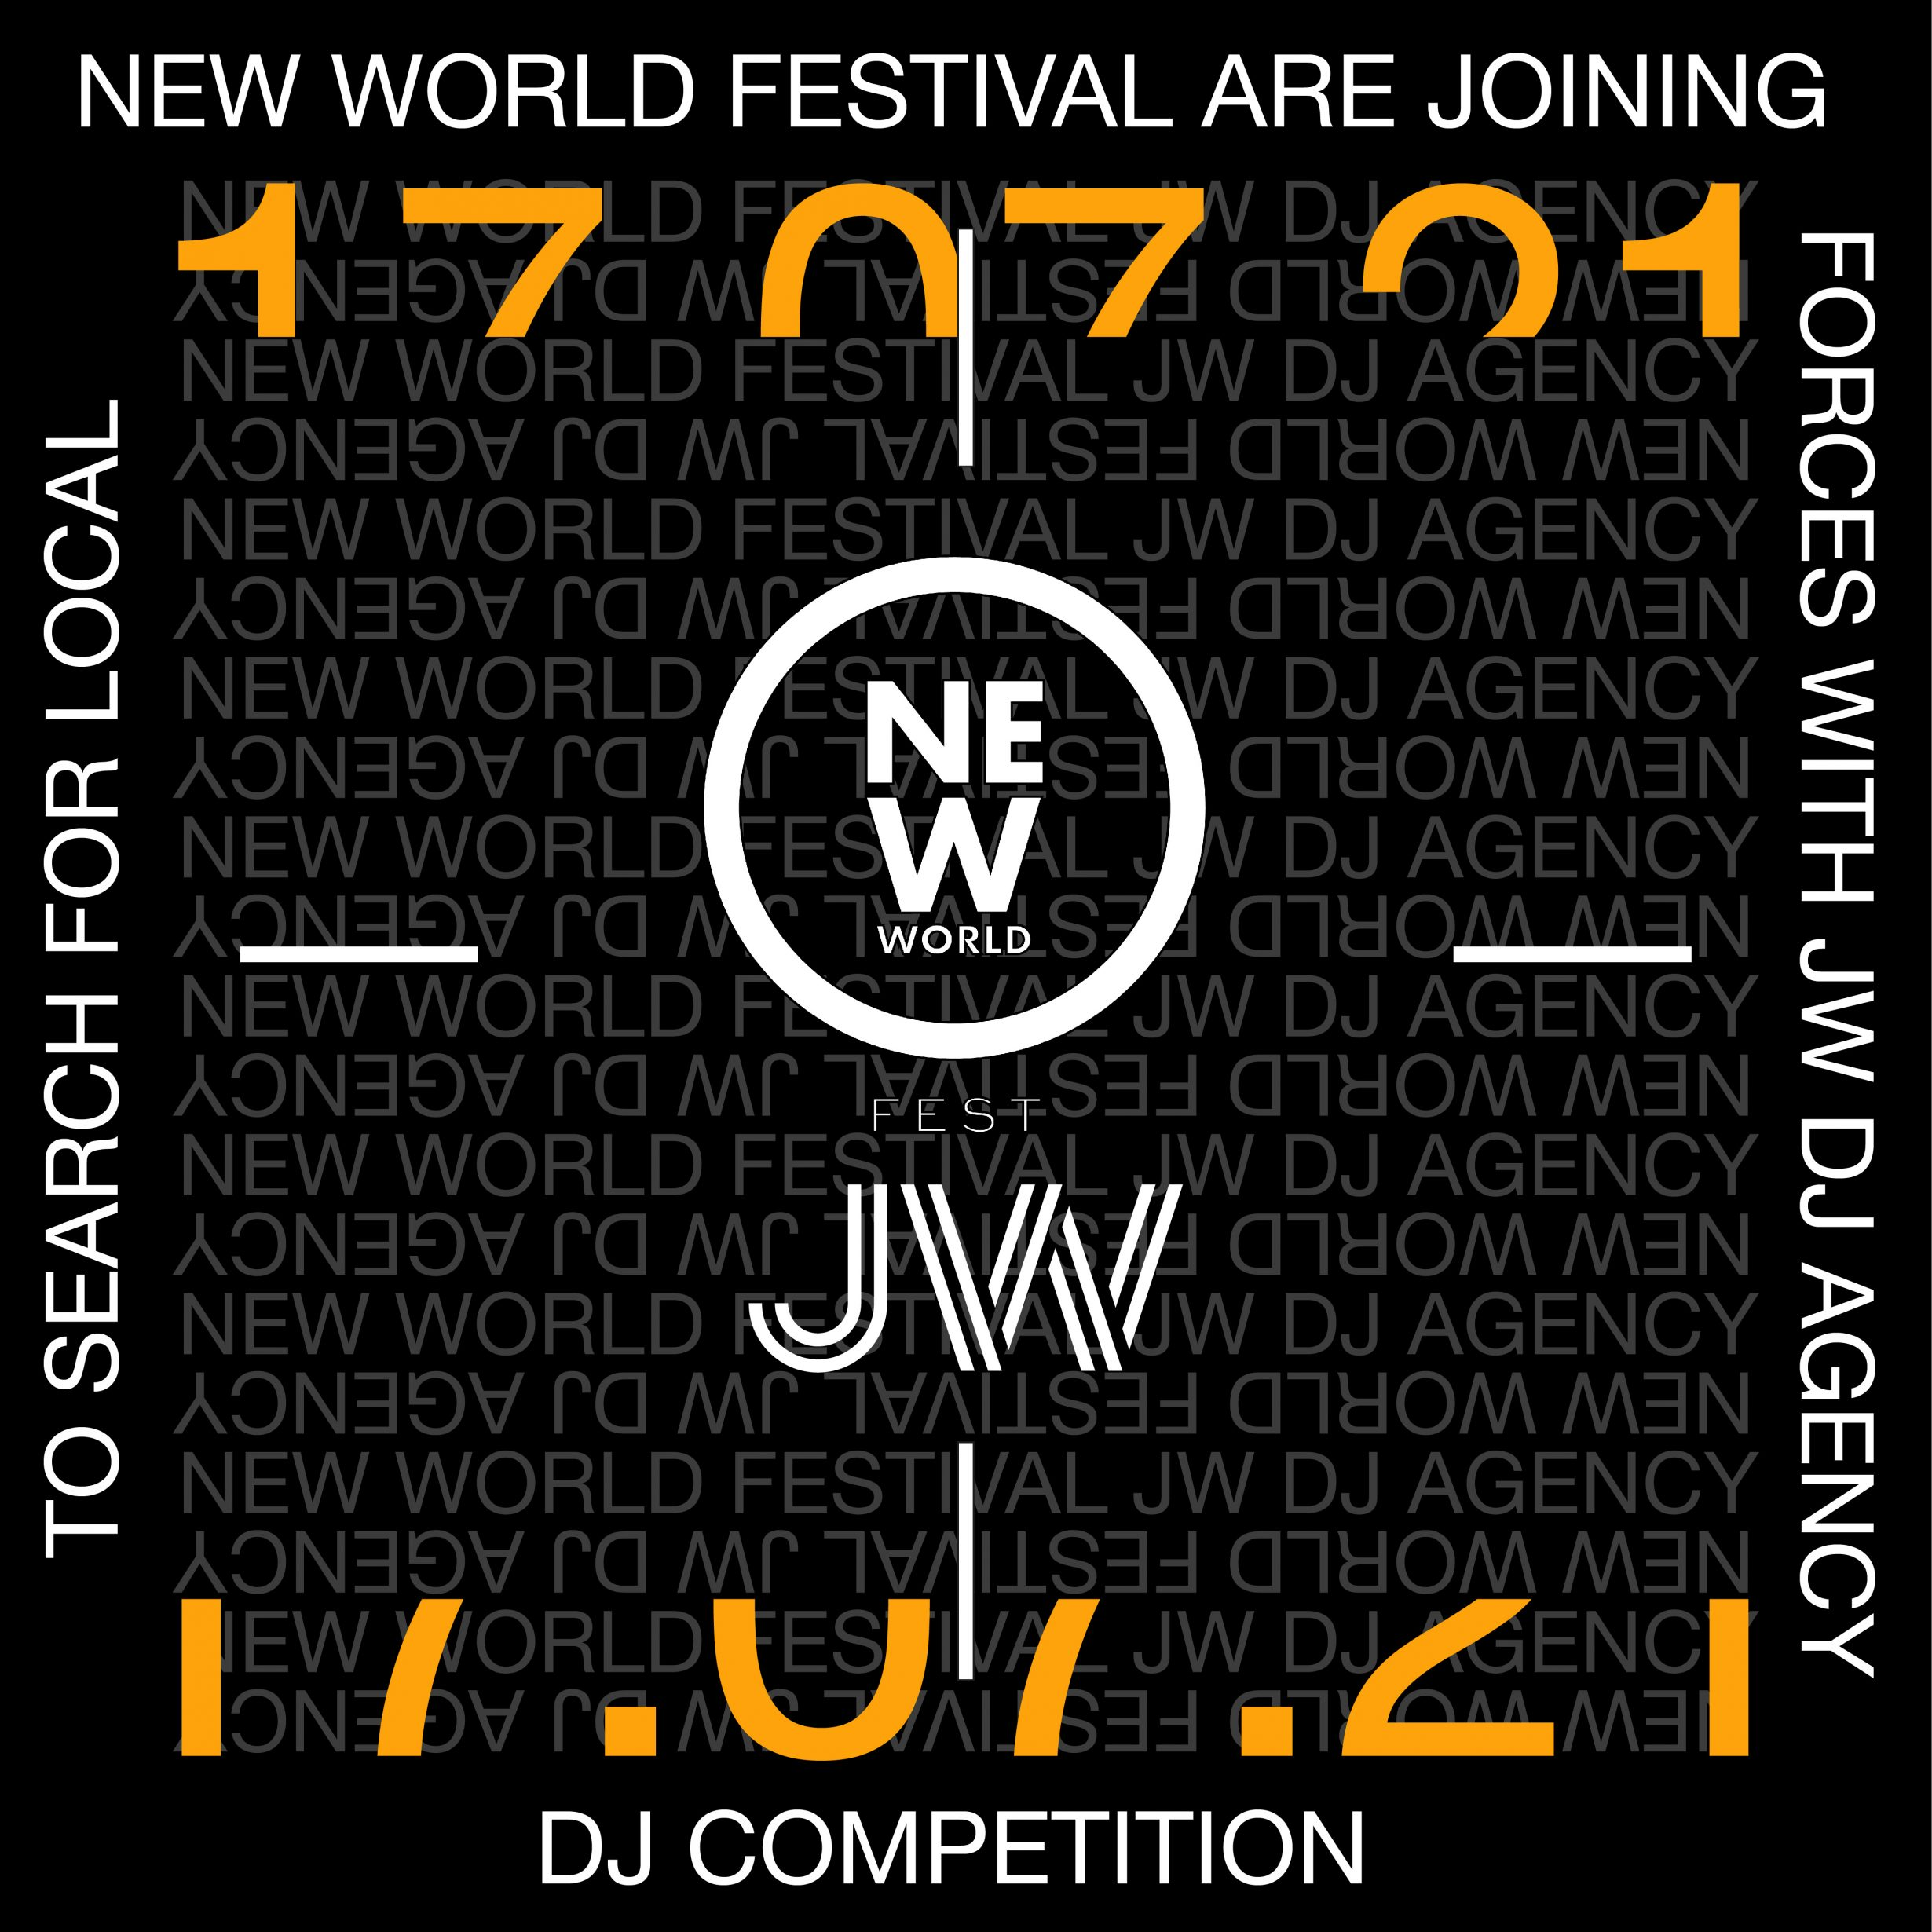 New World Festival Competition Entry Information